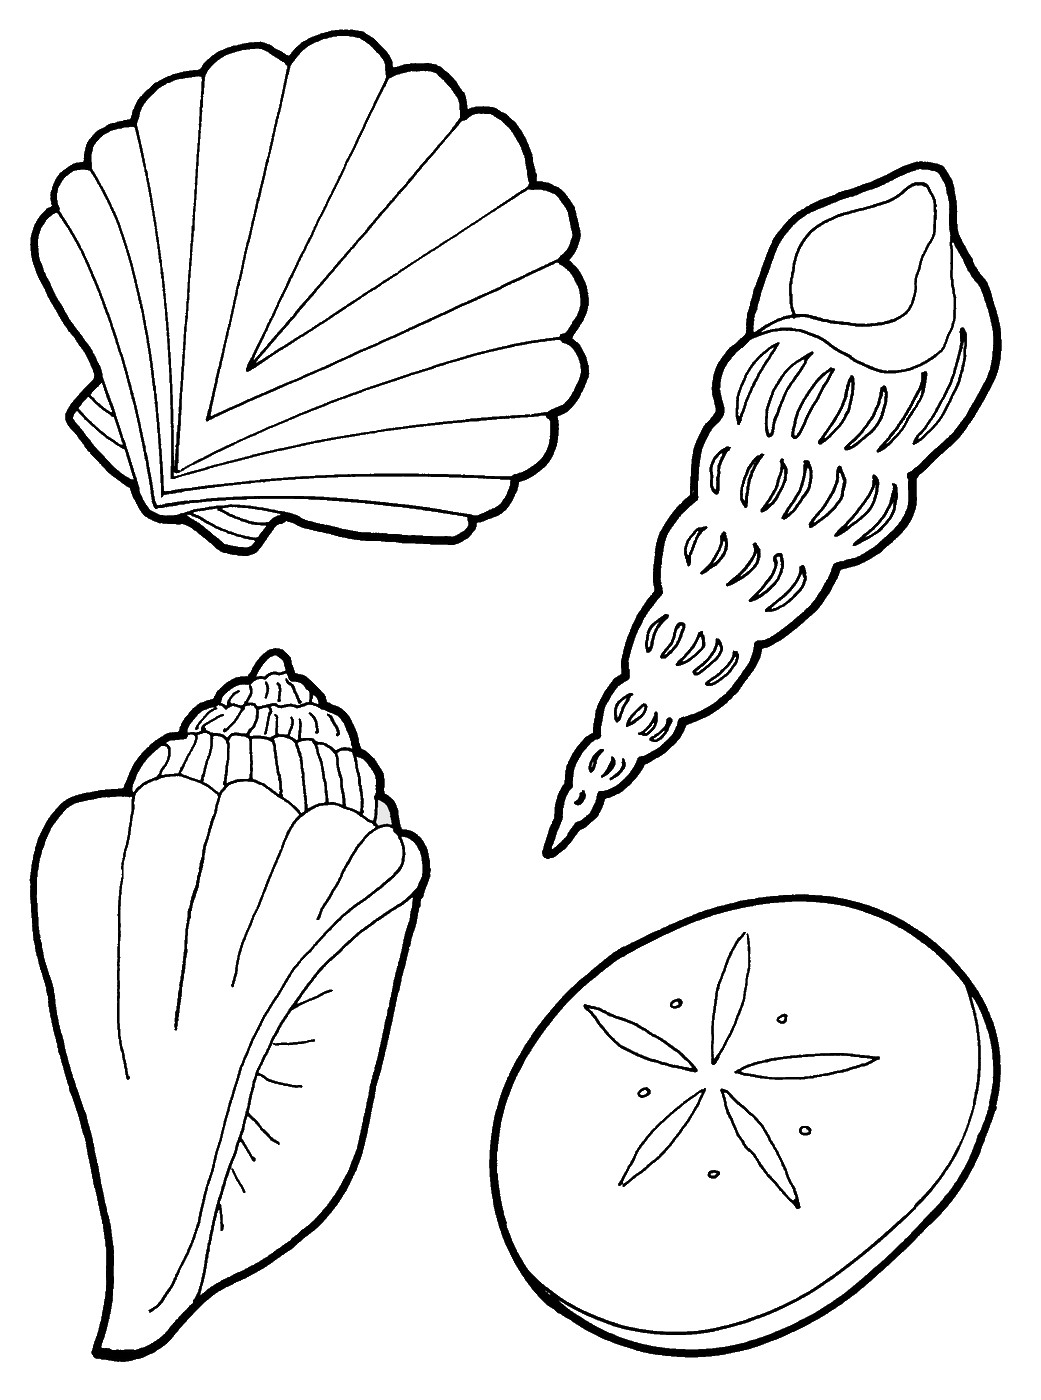 Galerry coloring pages to print out